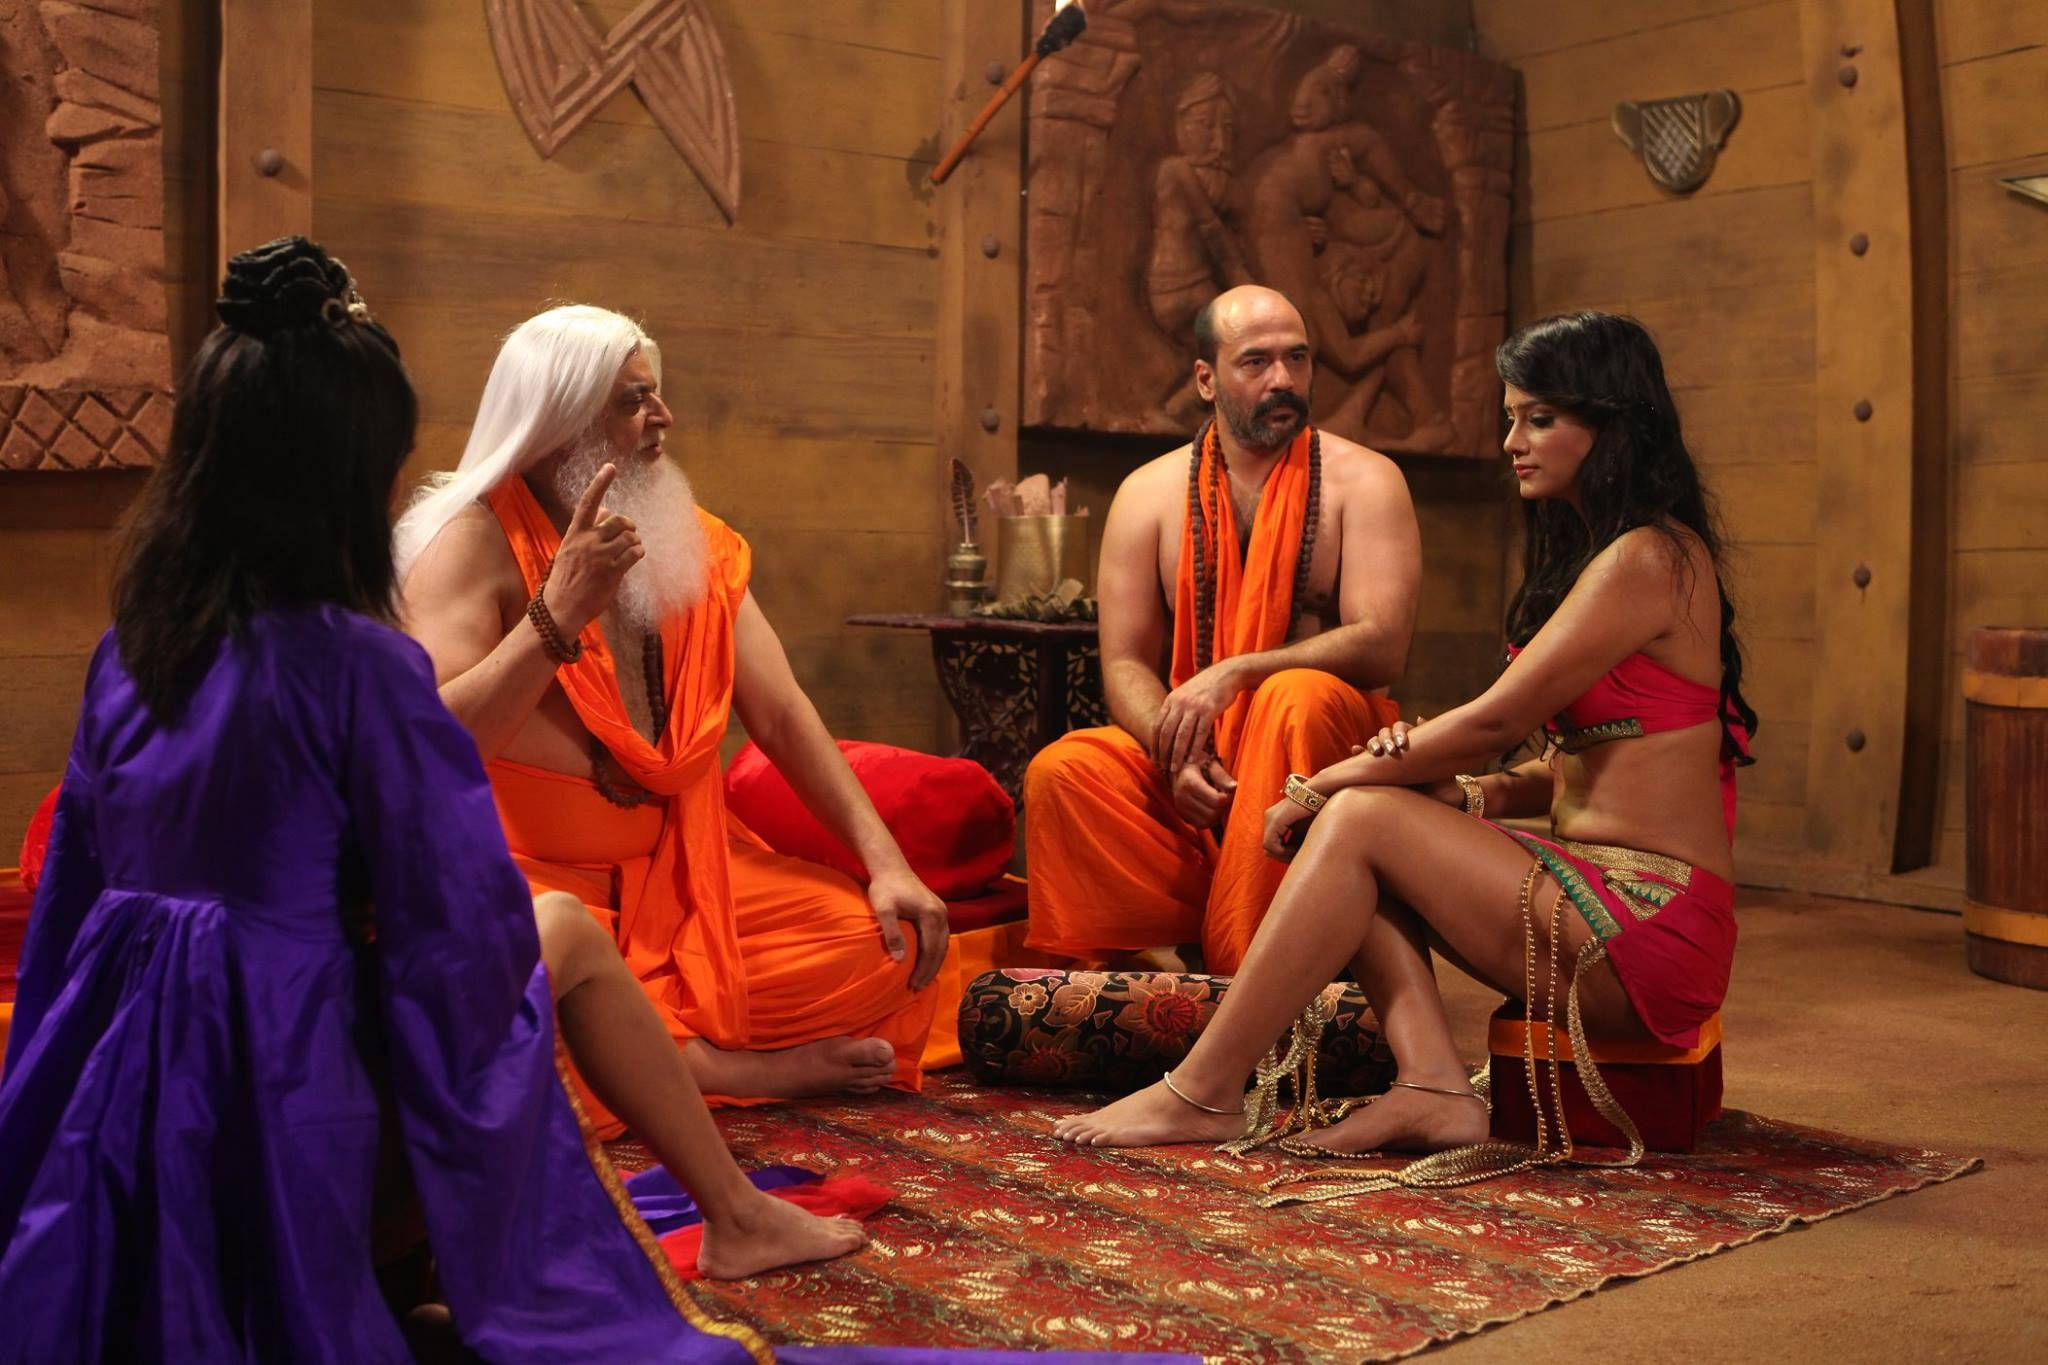 Kamasutra 3D Exclusive Still From The Movie  Movie -7554